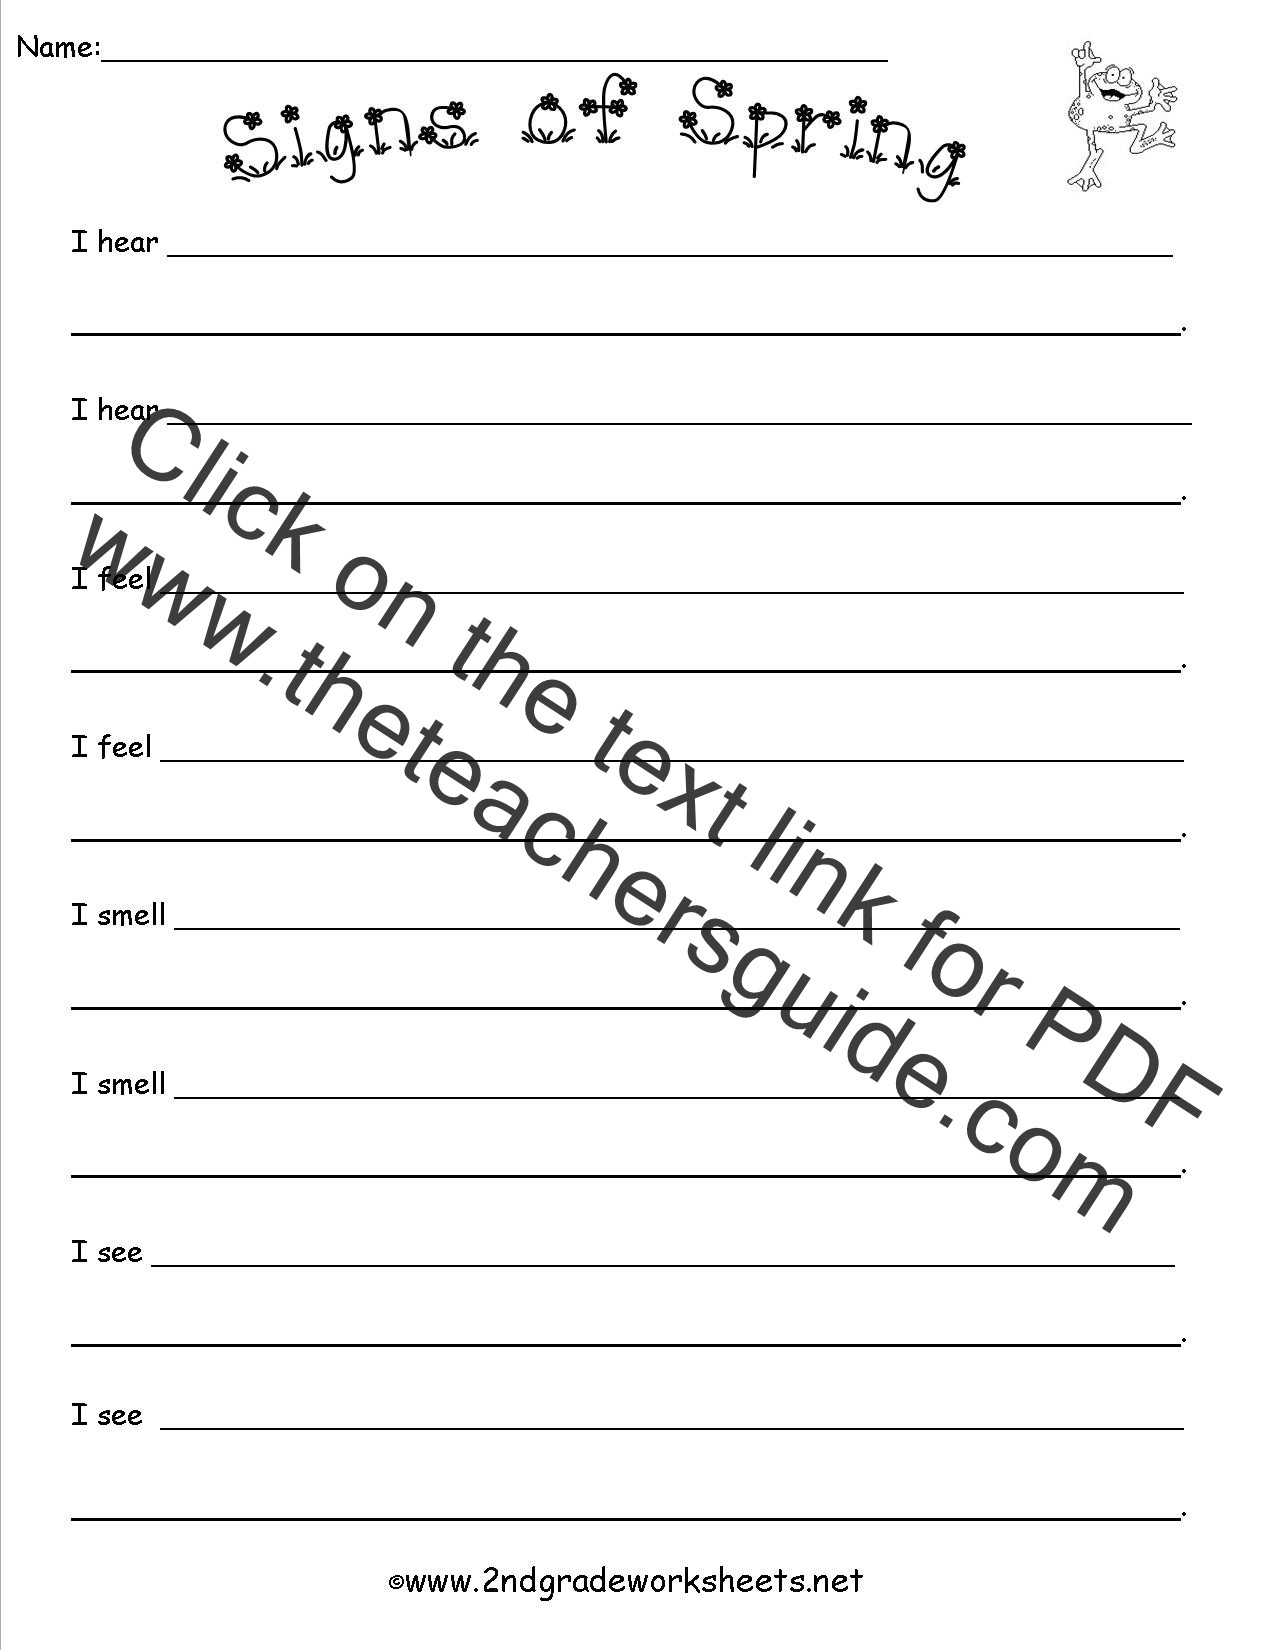 Weather Worksheets for Second Grade Weather Worksheet New 727 Free Weather Related Worksheets